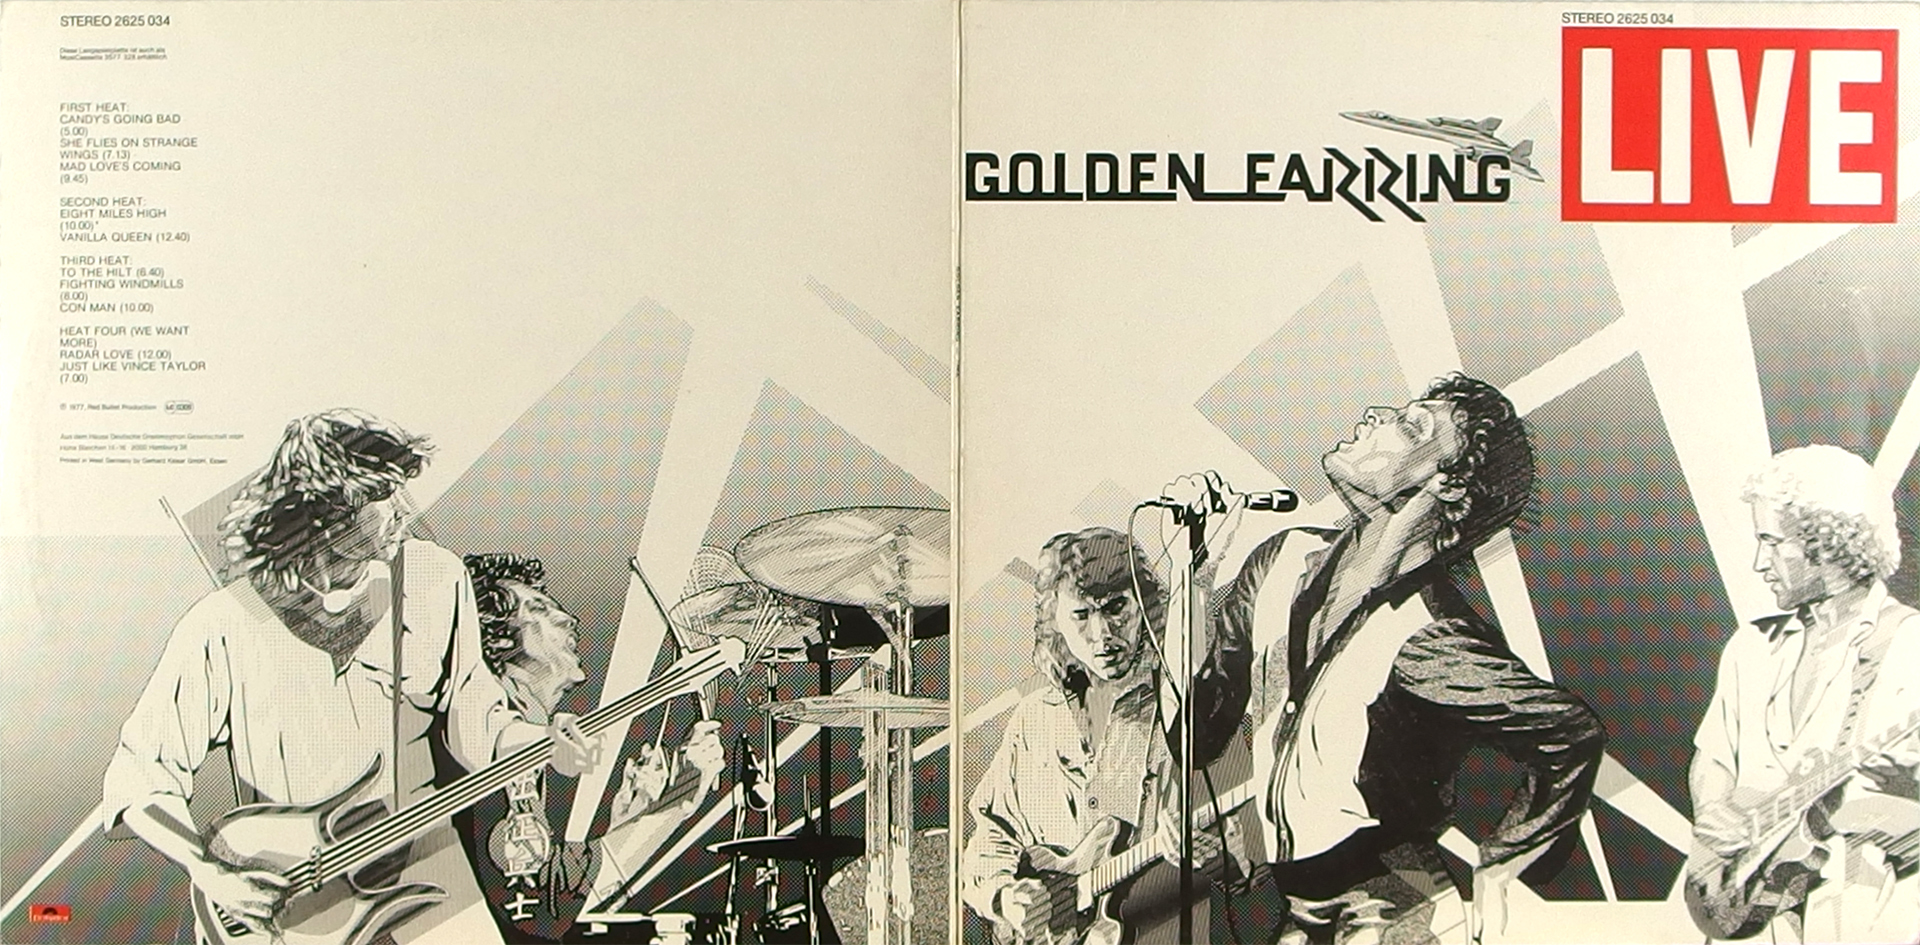 LP Cover: Golden Earring - Live - 1977